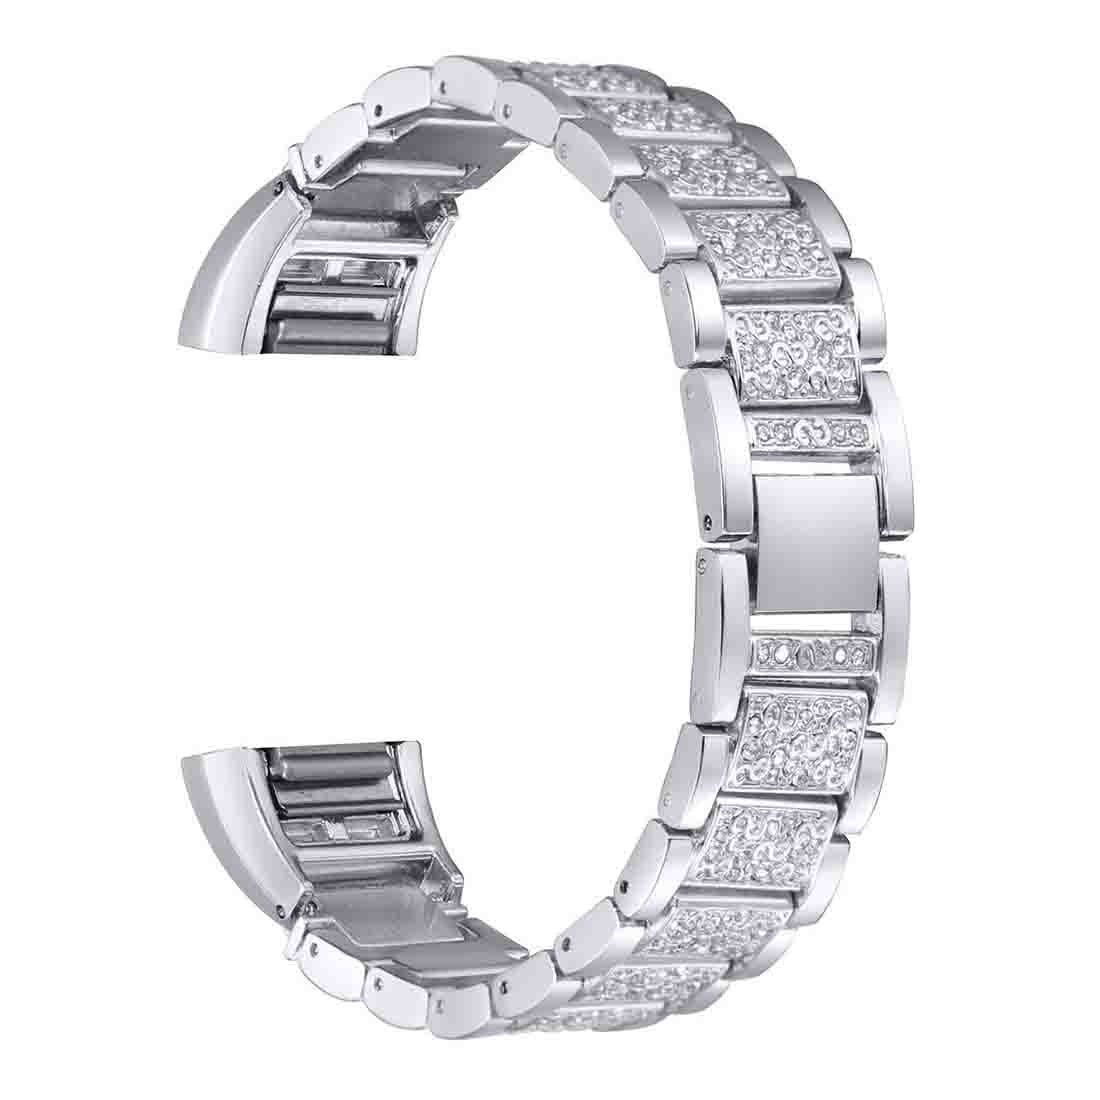 For Fitbit Charge 2, Replacement Metal Bands with Rhinestone Bling Fitbit Charge 2 Bands Bracelet (Original color)